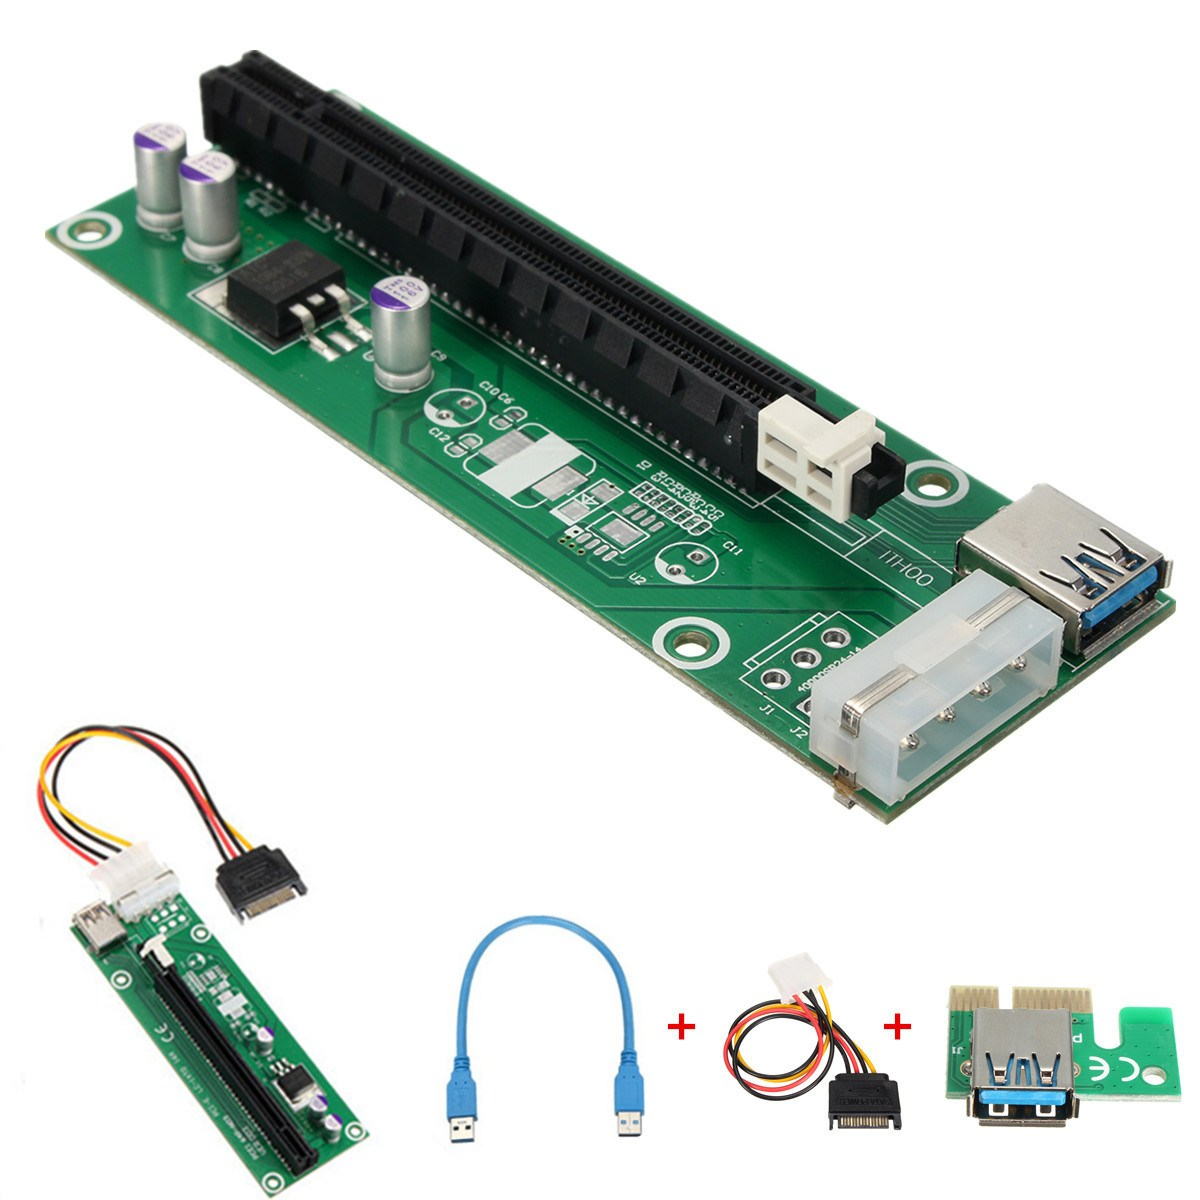 все цены на High Quality Wholesale  5Pcs USB 3.0 PCI-E Express 1x to16x Extender Riser Board Card Adapter SATA Power Cable онлайн